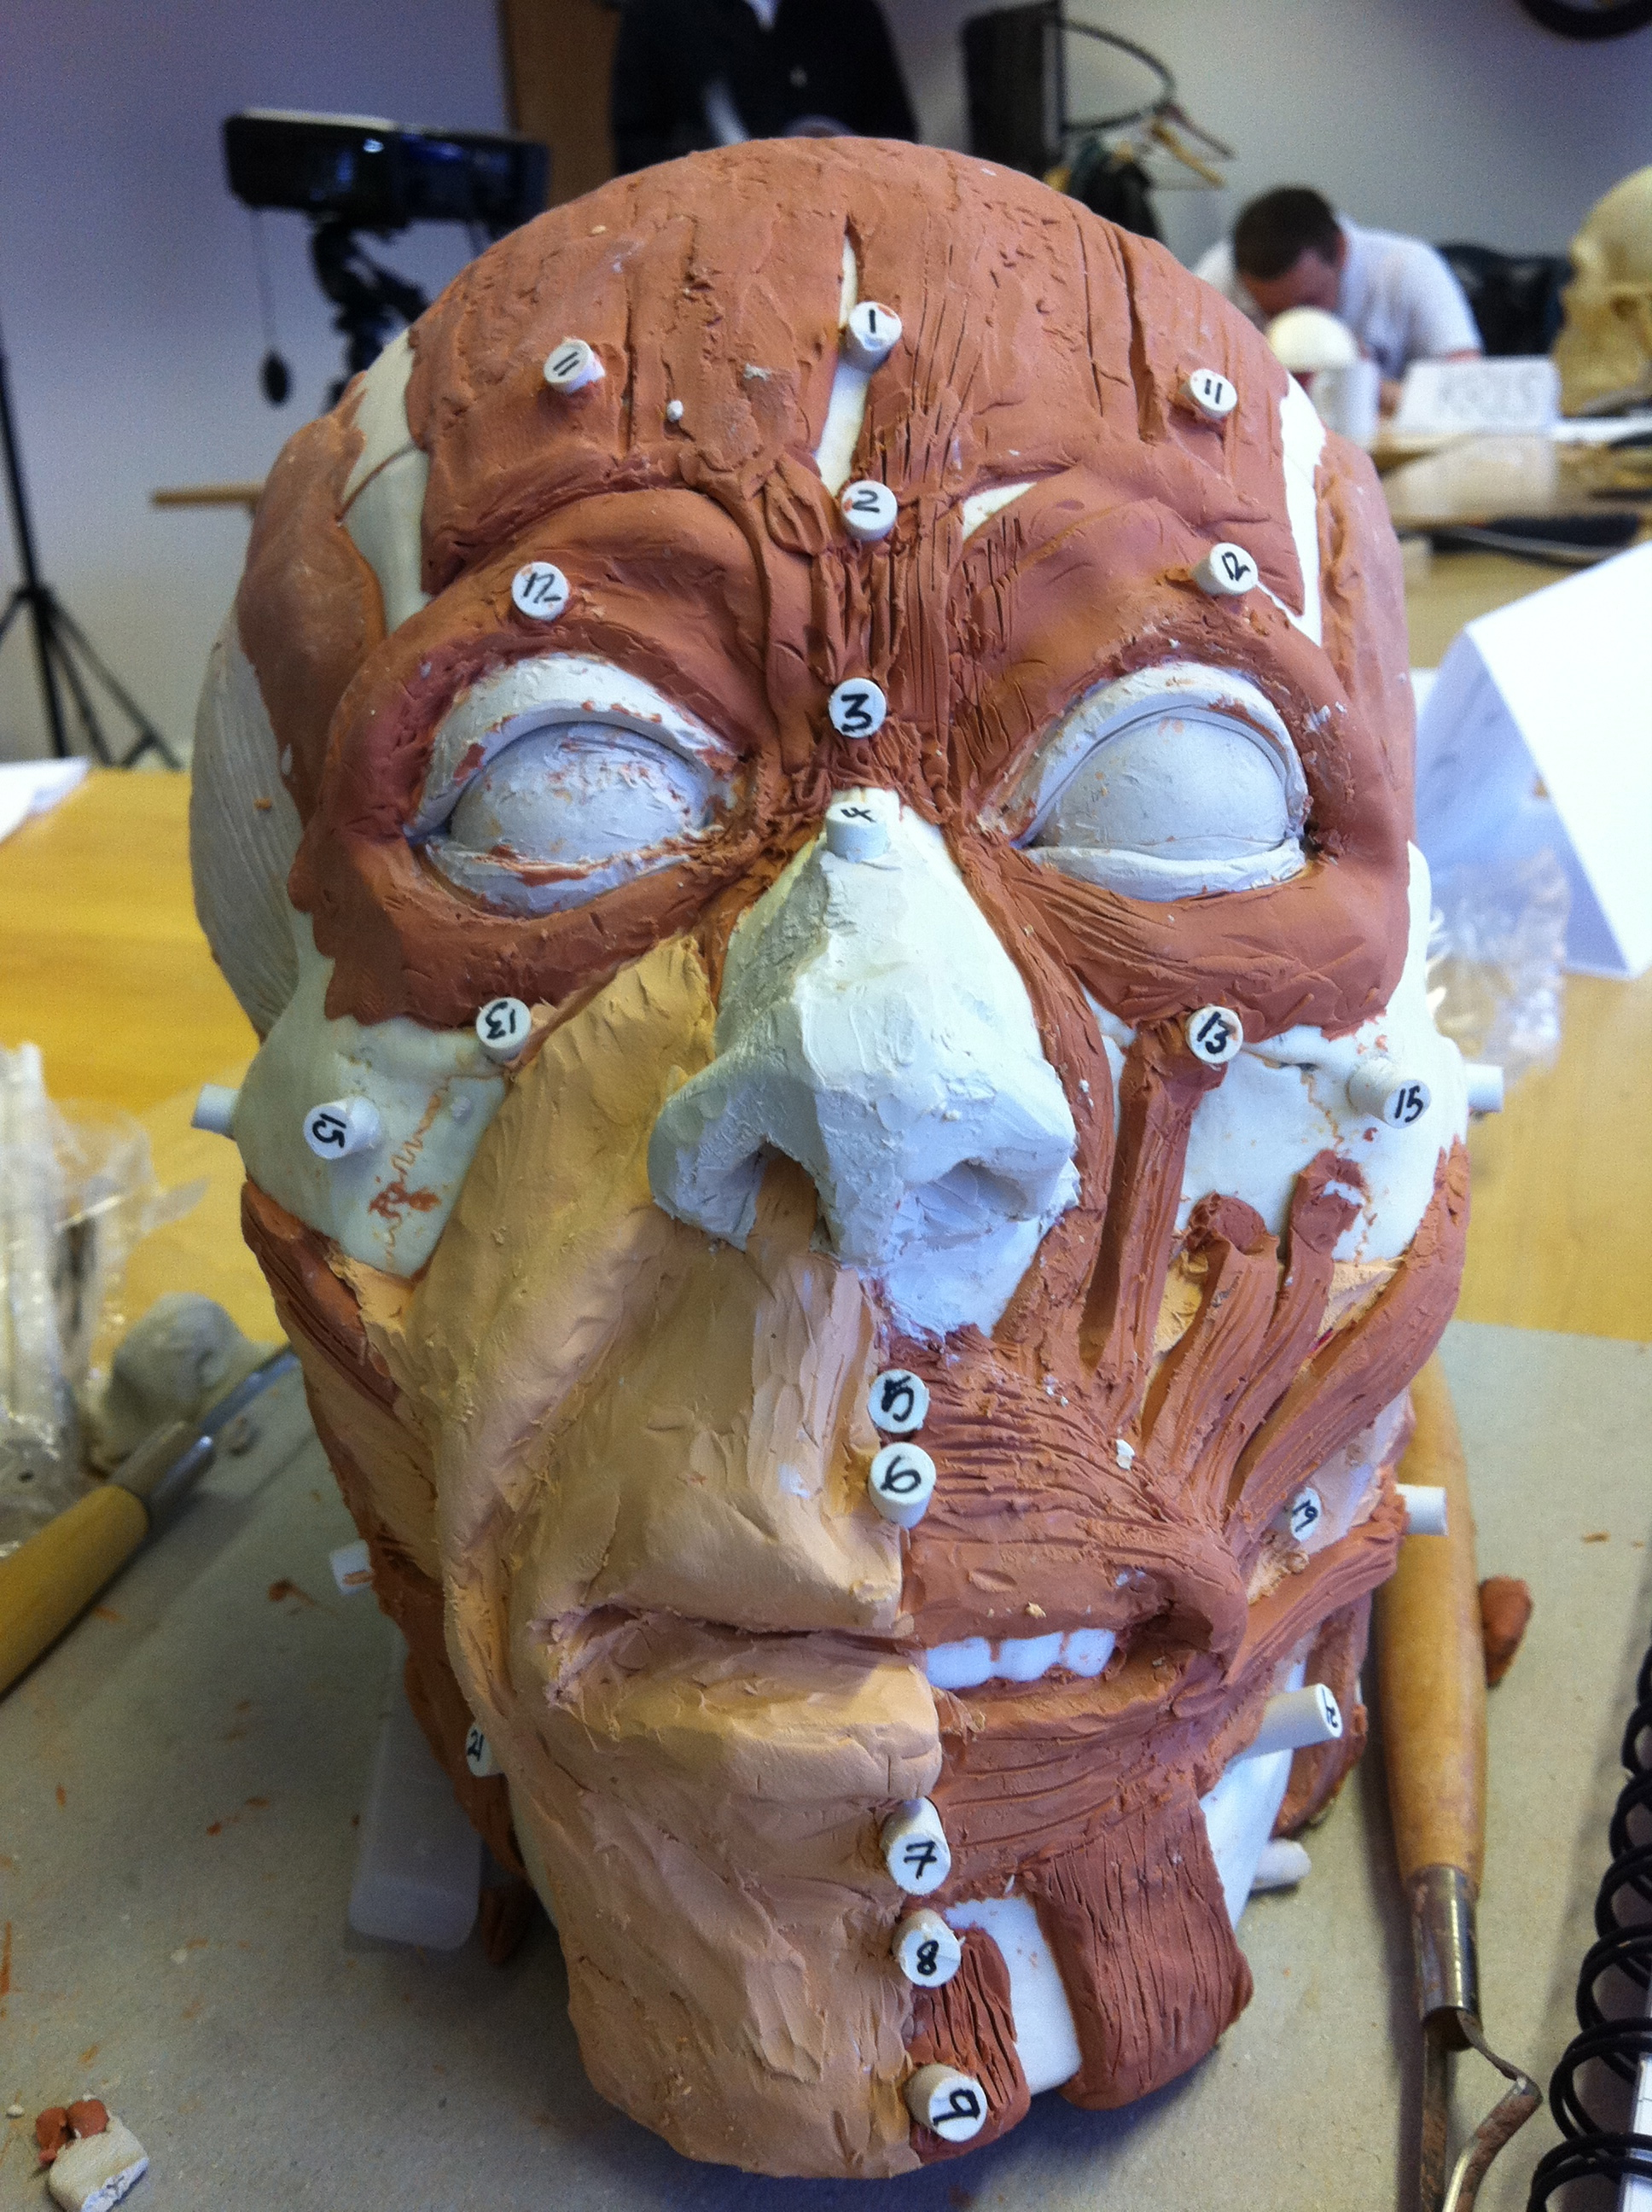 Almost completed. The face now has features and a bit of skin.